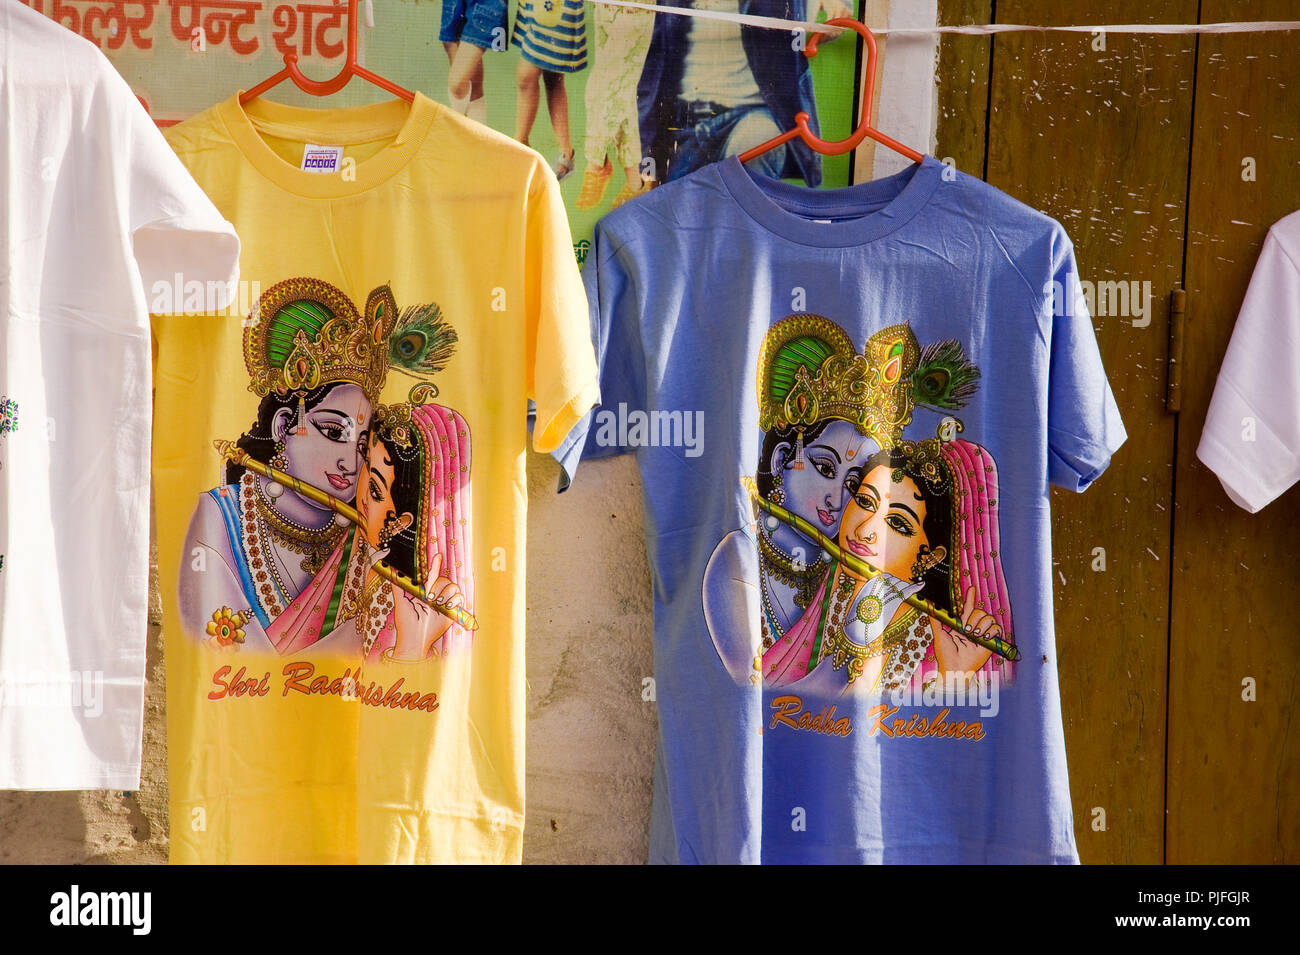 374973c0 Radha krishna printed on t shirt at Mathura Uttar Pradesh India Asia, South  Asia -